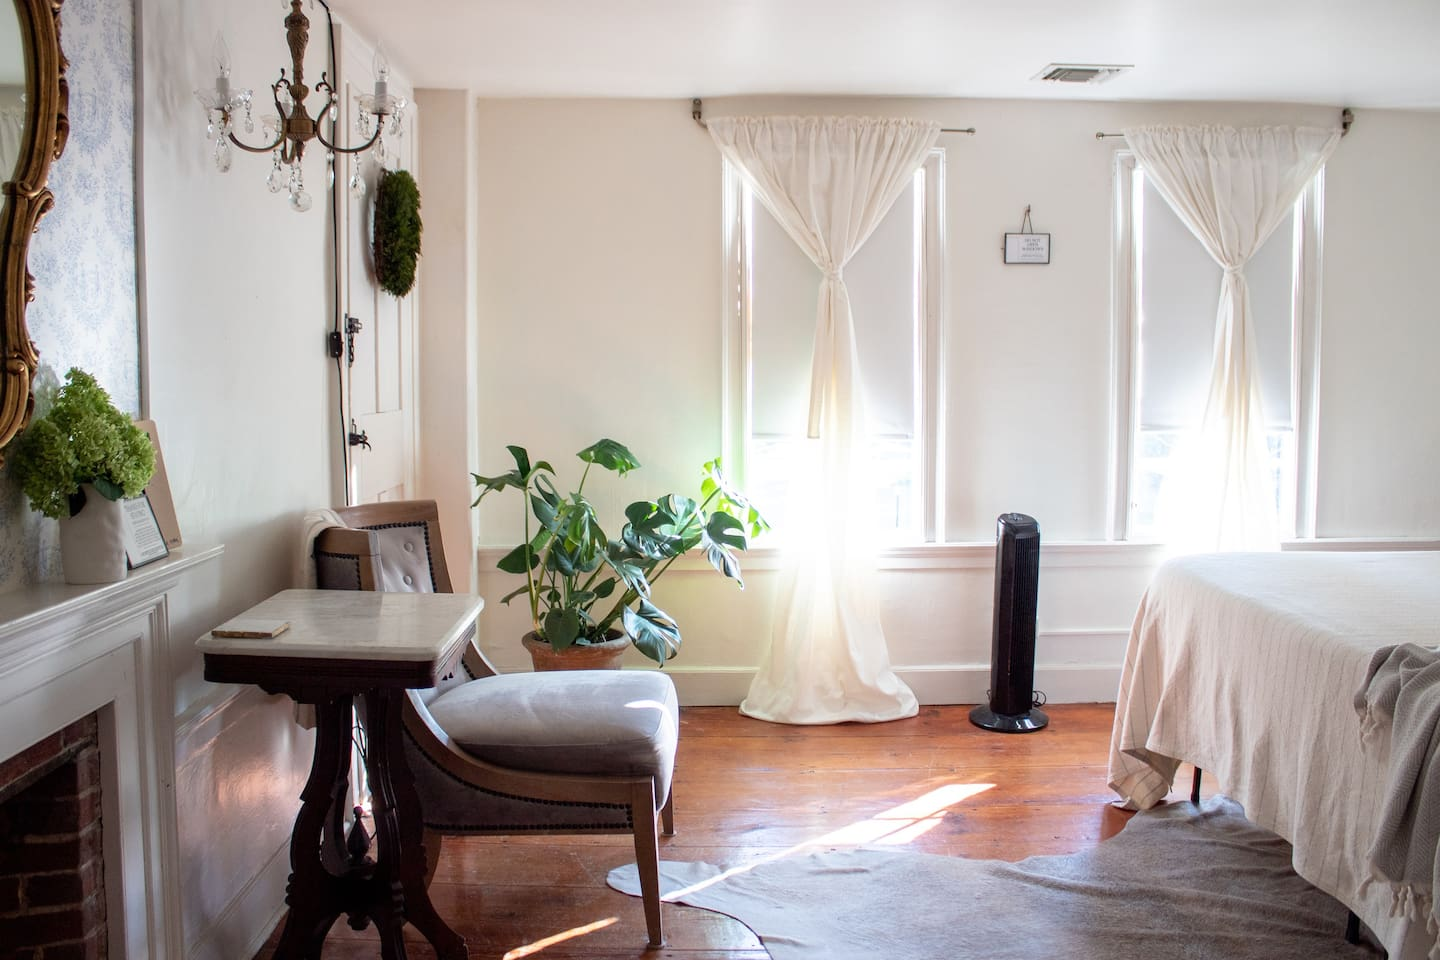 3 Room Eco Suite - three bedrooms and shared bathroom and second floor sitting room.